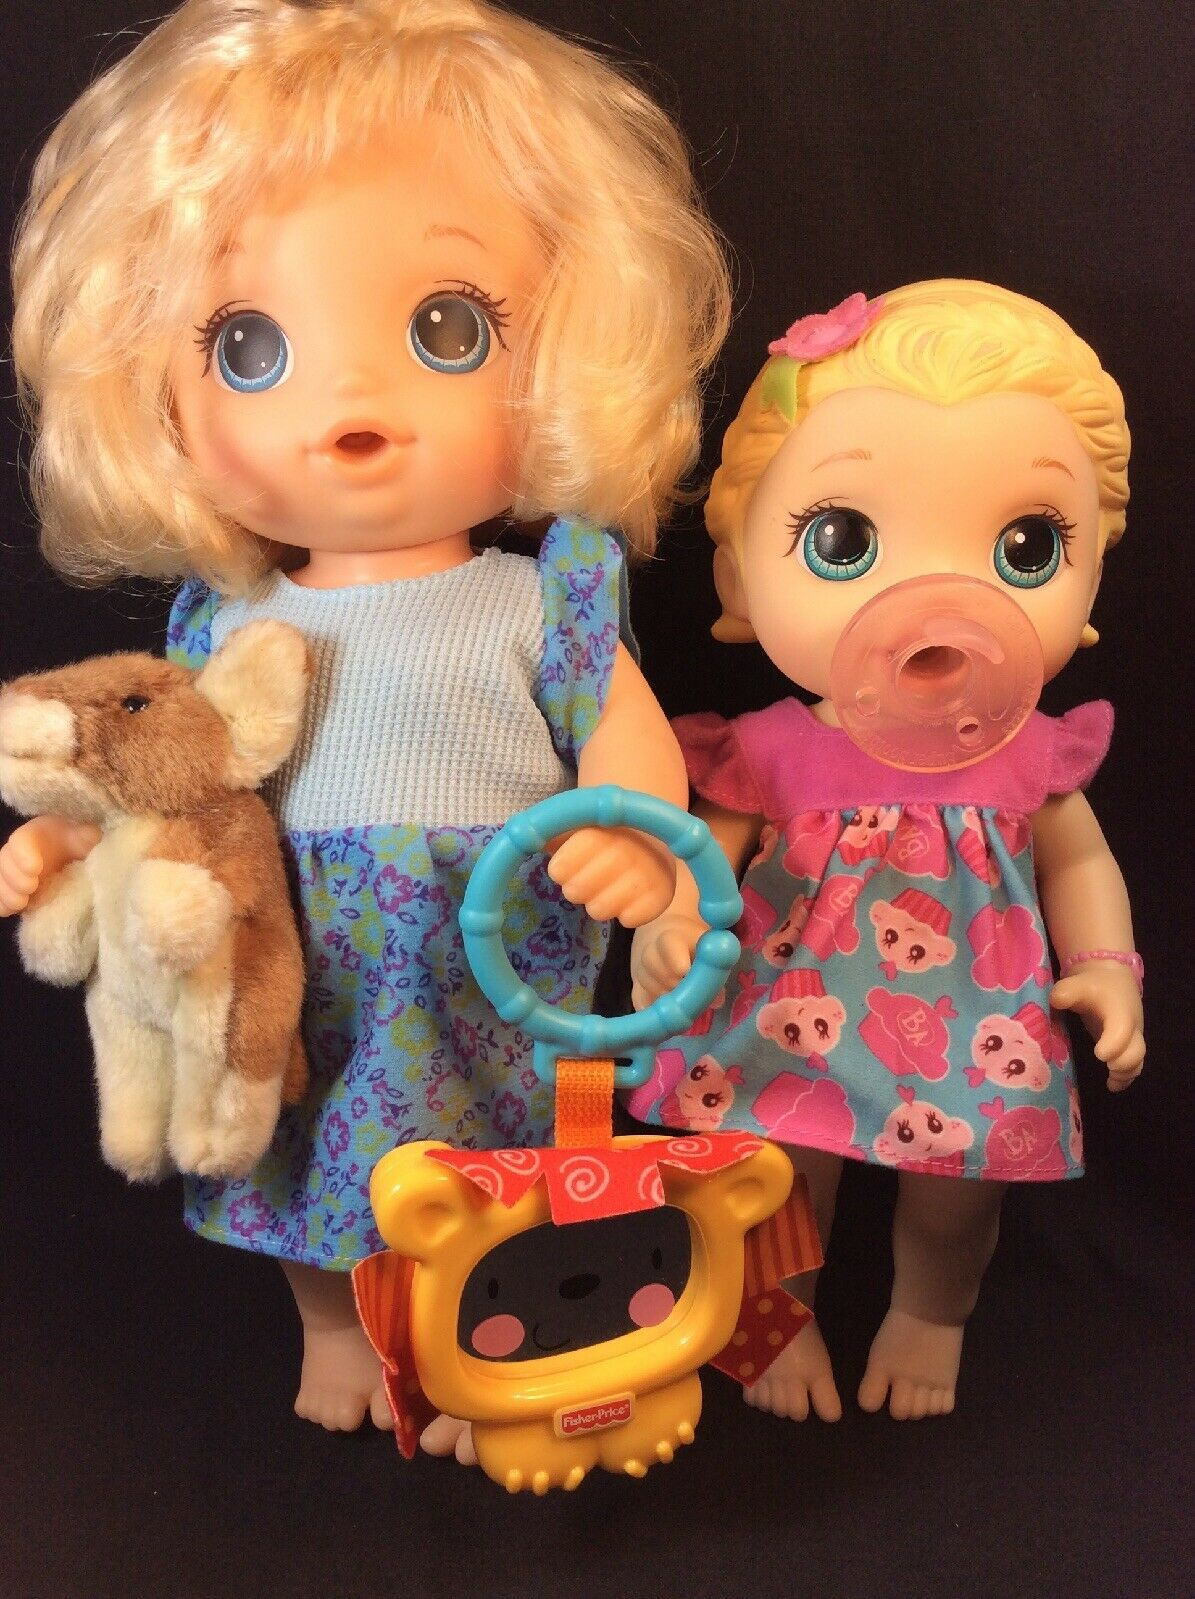 Lot Of Baby Alive Dolls Potty Dance Snackin Lily Accessories Clothes 33 92 Baby Alive Dolls If Doll Is Baby Alive Doll Clothes Baby Alive Dolls Baby Alive